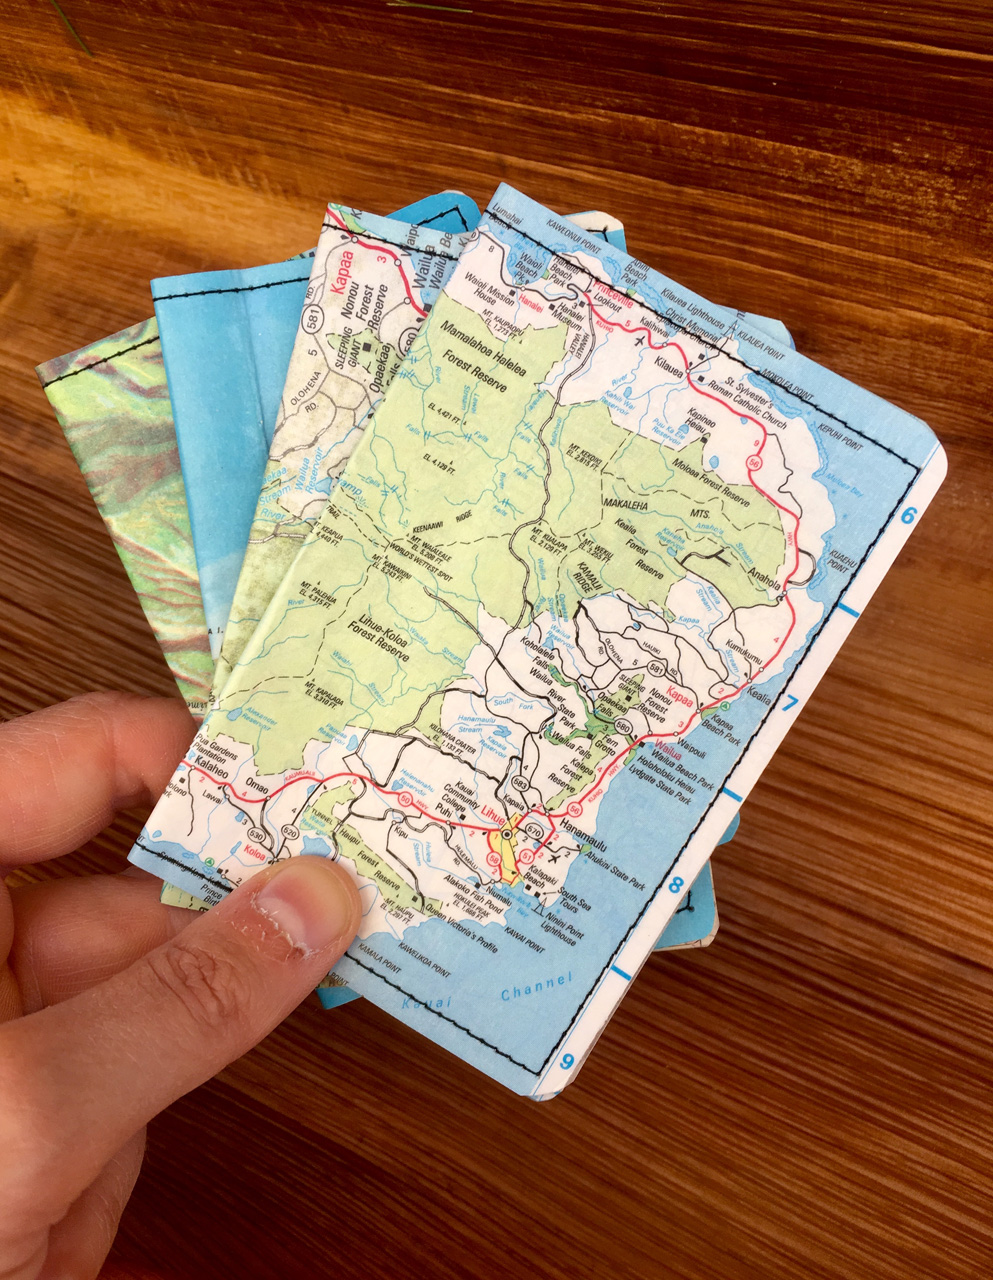 Kauai Map Wallets by Heather Simoni